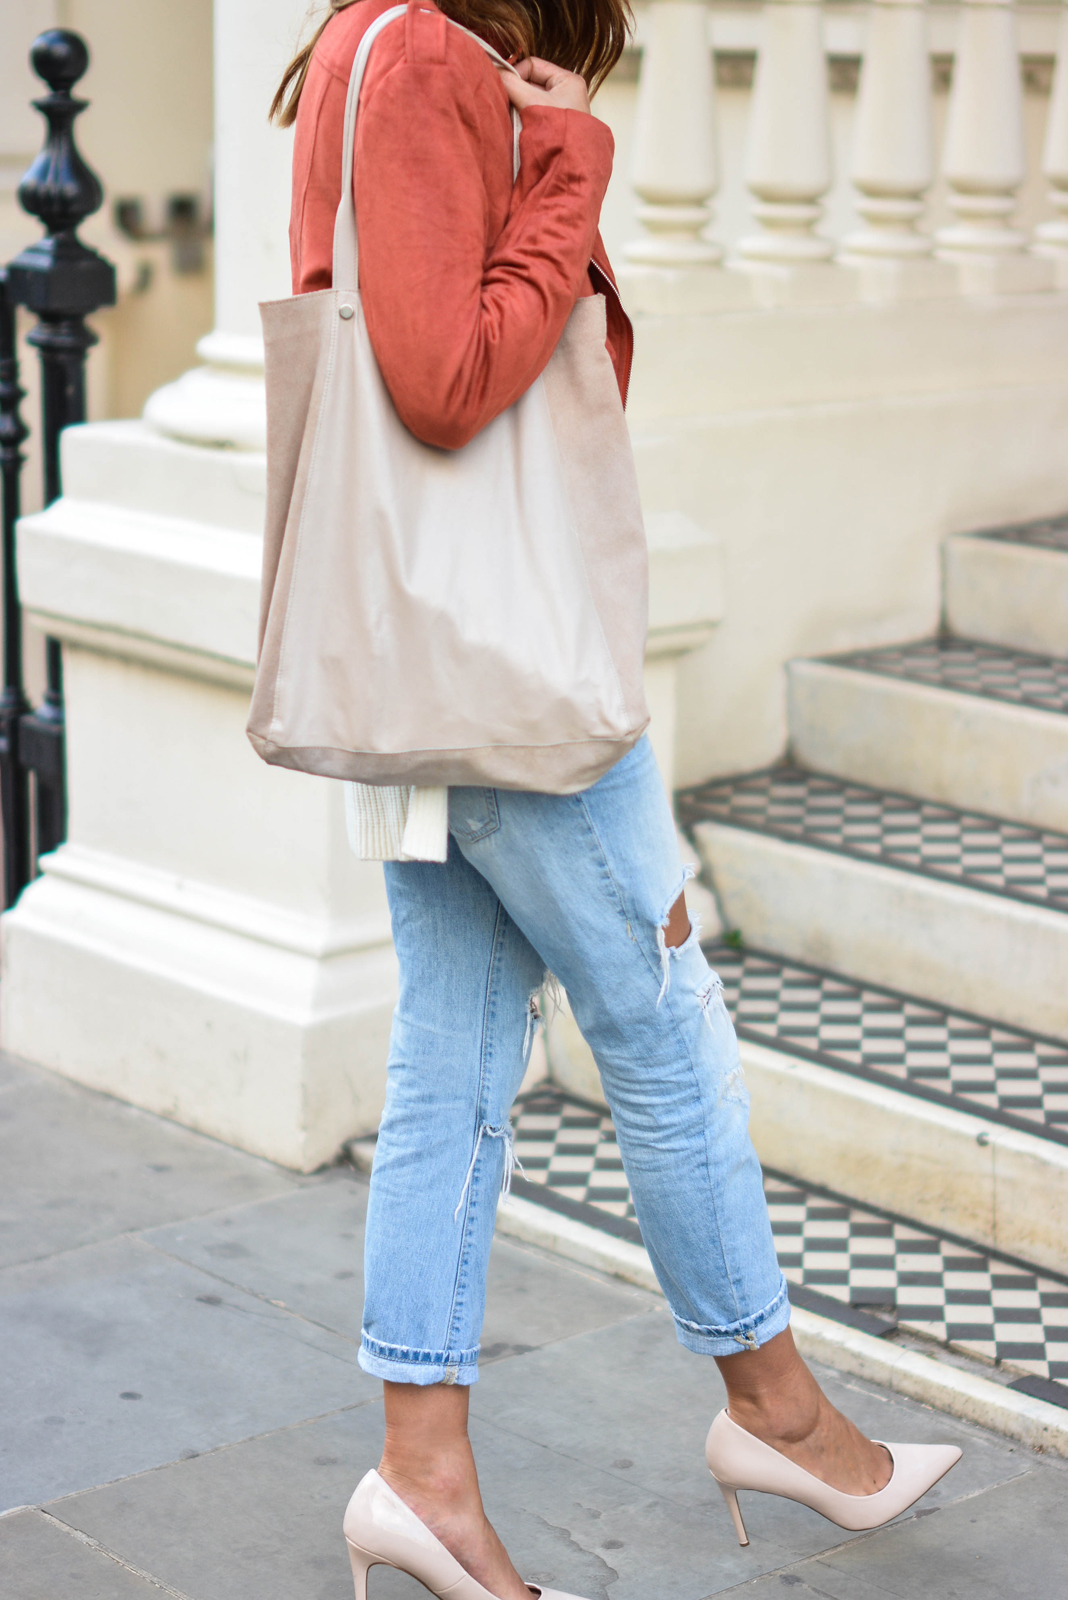 EJSTYLE wears Missguided rust faux suede biker jacket, ripped light wash boyfriend jeans, nude patent heels pumps, nude suede bag